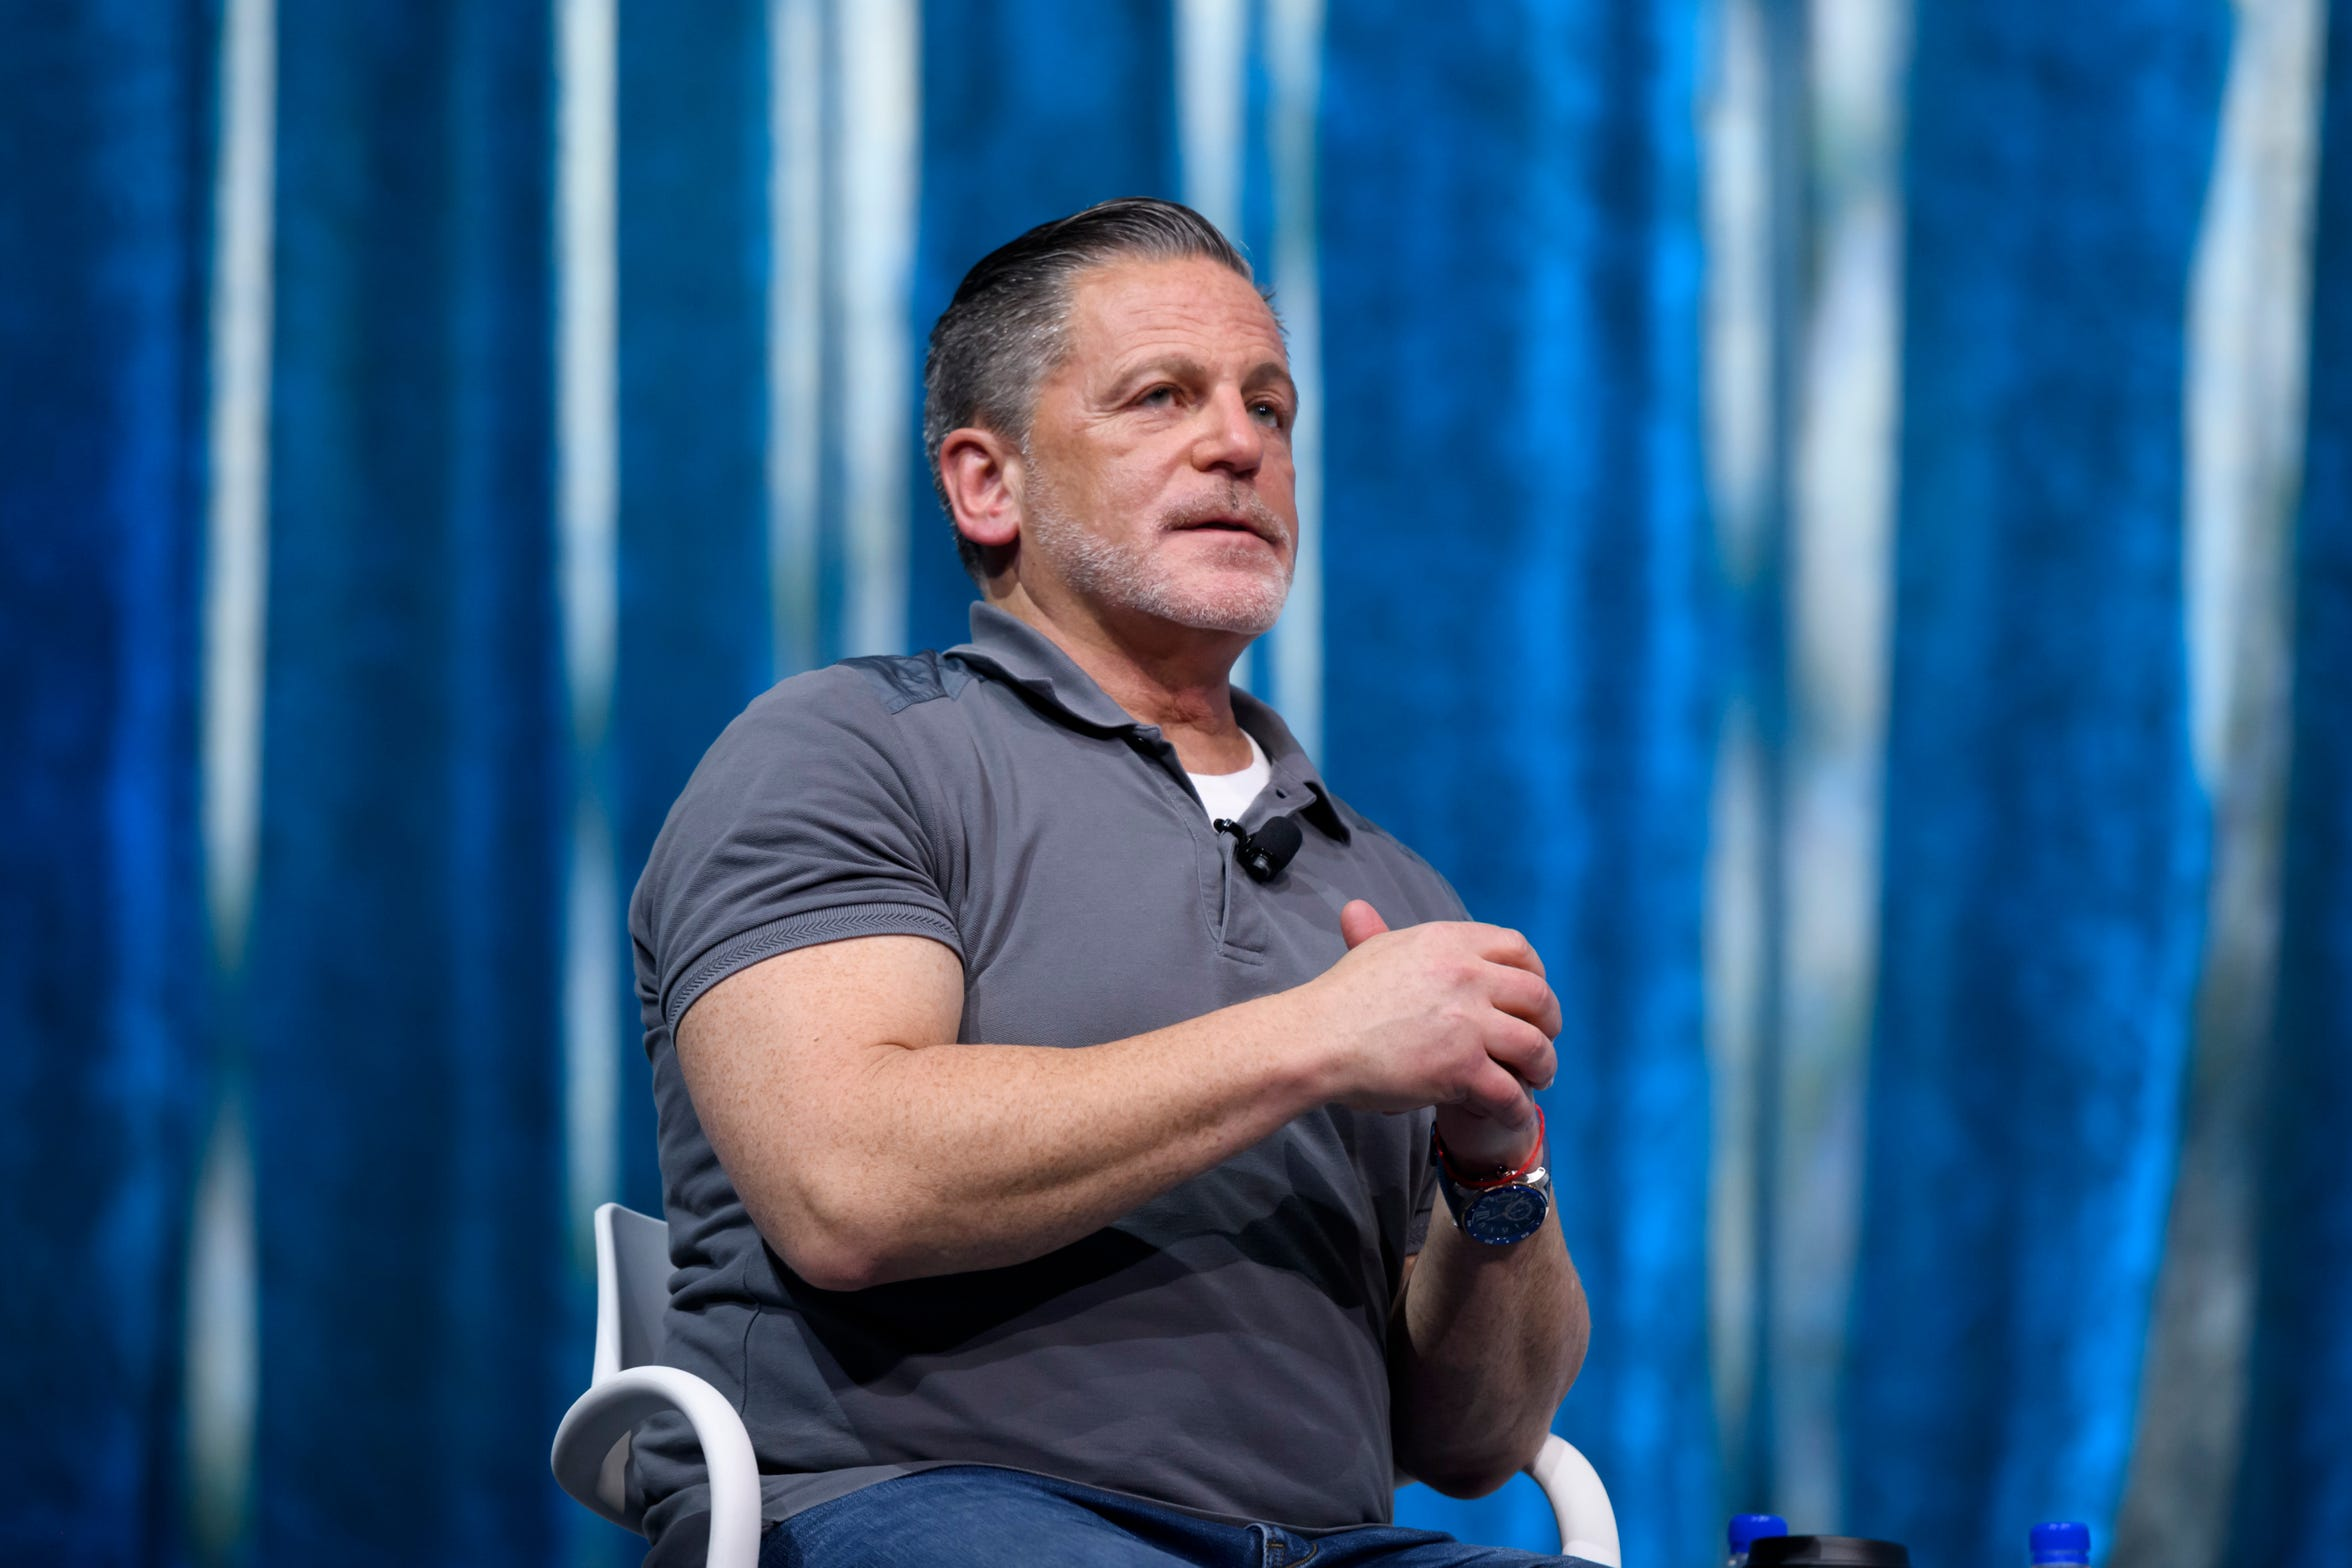 Billionaire businessman Dan Gilbert speaks during the Quicken Loans Detroit Demo Day at the Detroit Music Hall, in Detroit, June 22, 2018. The cofounder of Quicken Loans and owner of the Cleveland Cavaliers suffered a stroke in May and largely hidden from public view since.